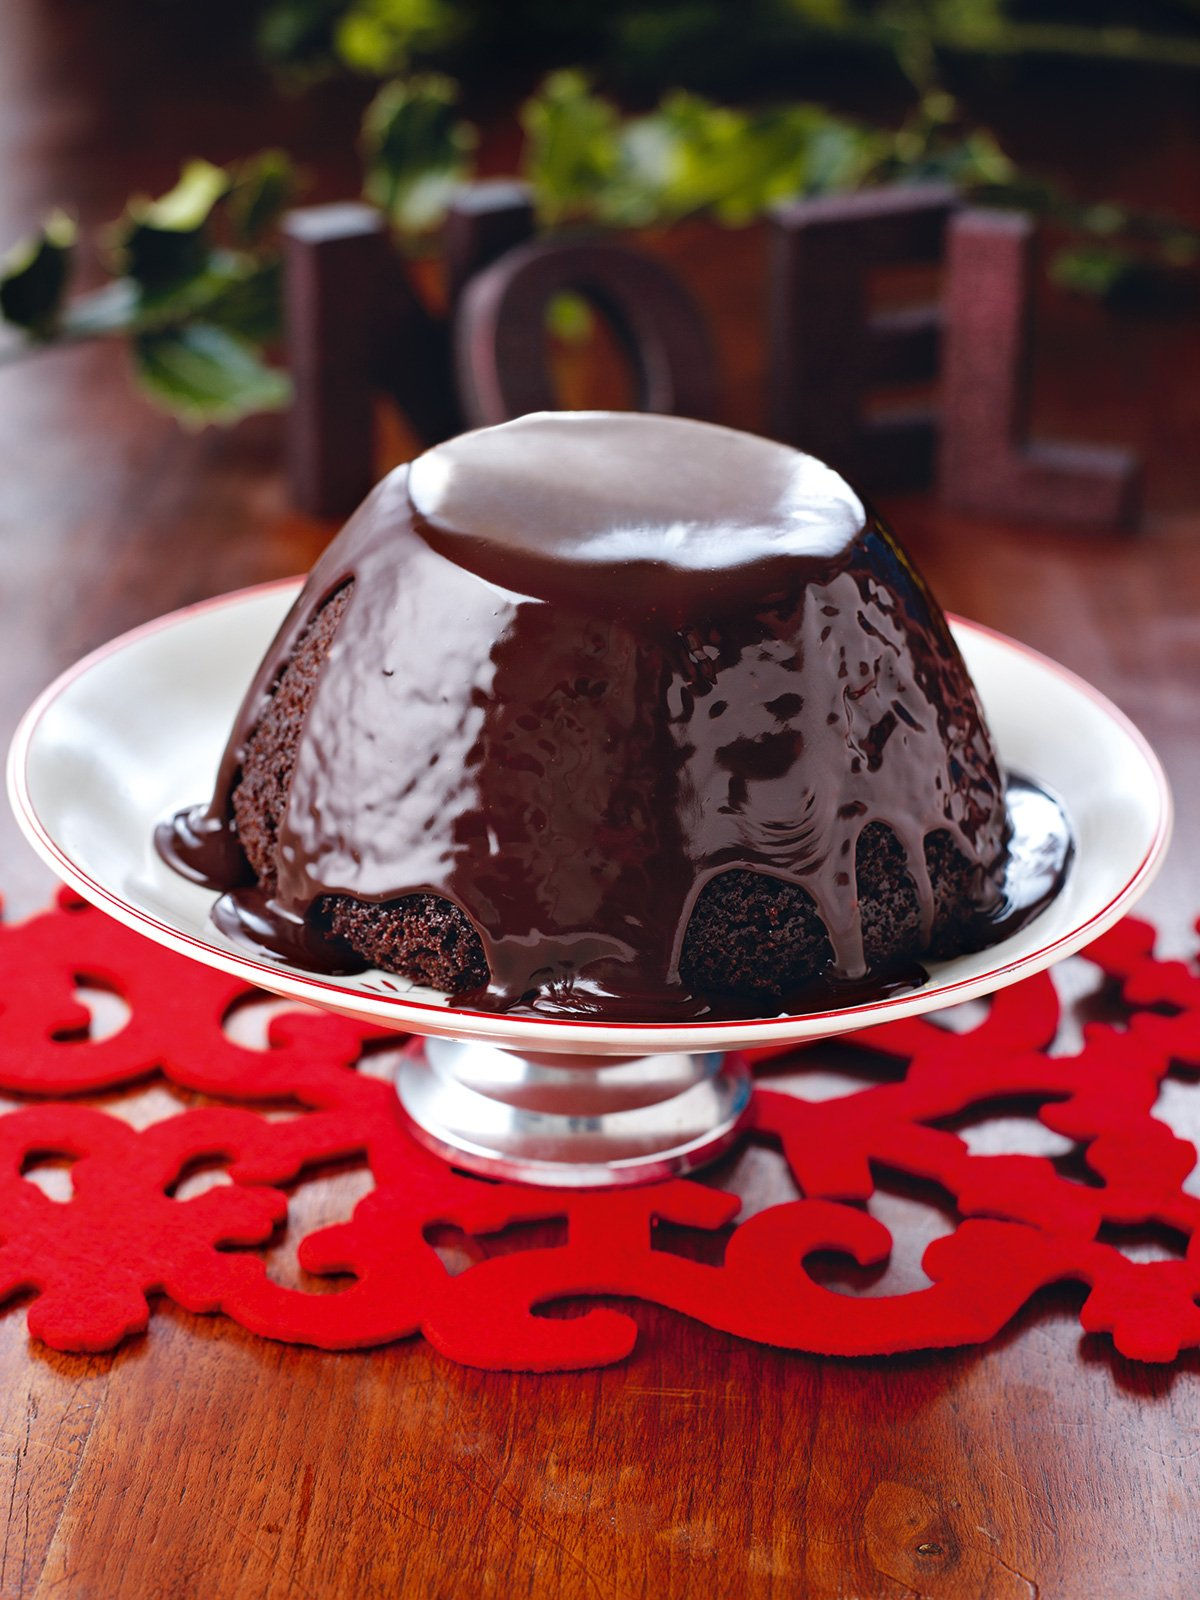 Chocolate Pudding For Christmas Pudding Haters With Hot